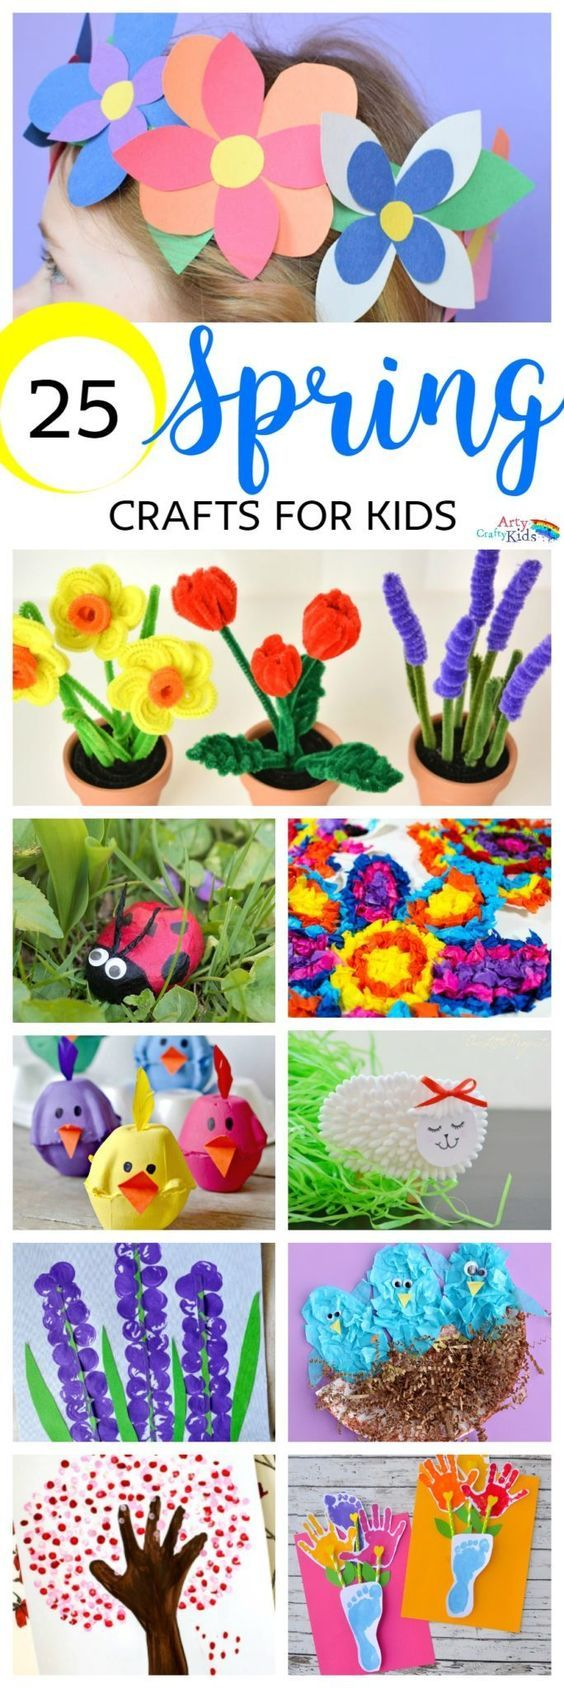 arty crafty kids crafts spring 25 spring crafts for kids discover a